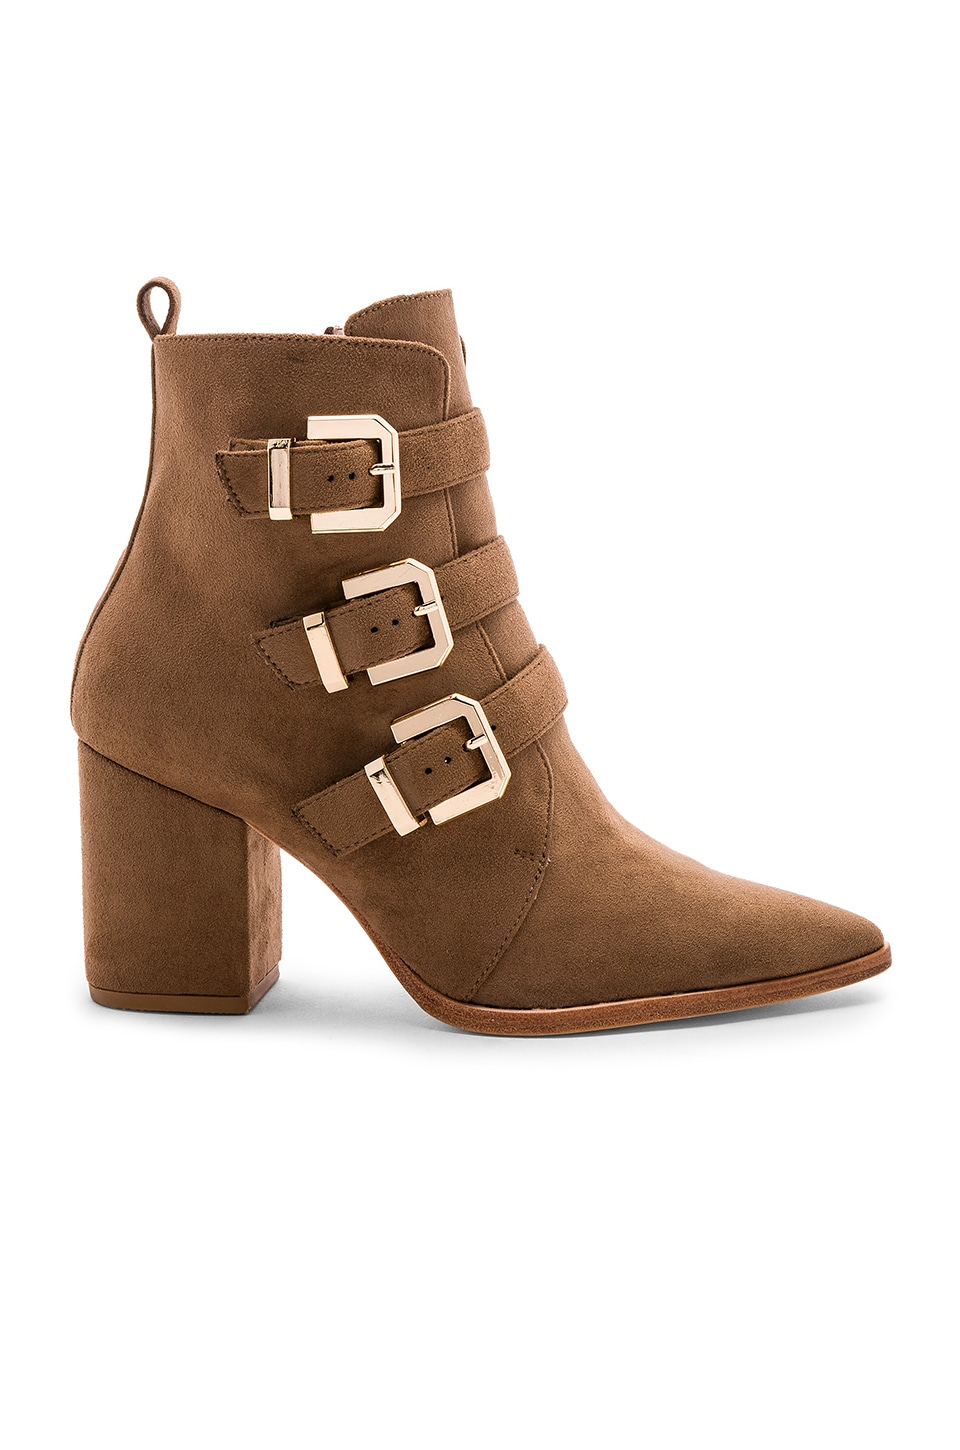 RAYE x House Of Harlow 1960 Doute Boot in Taupe Brown